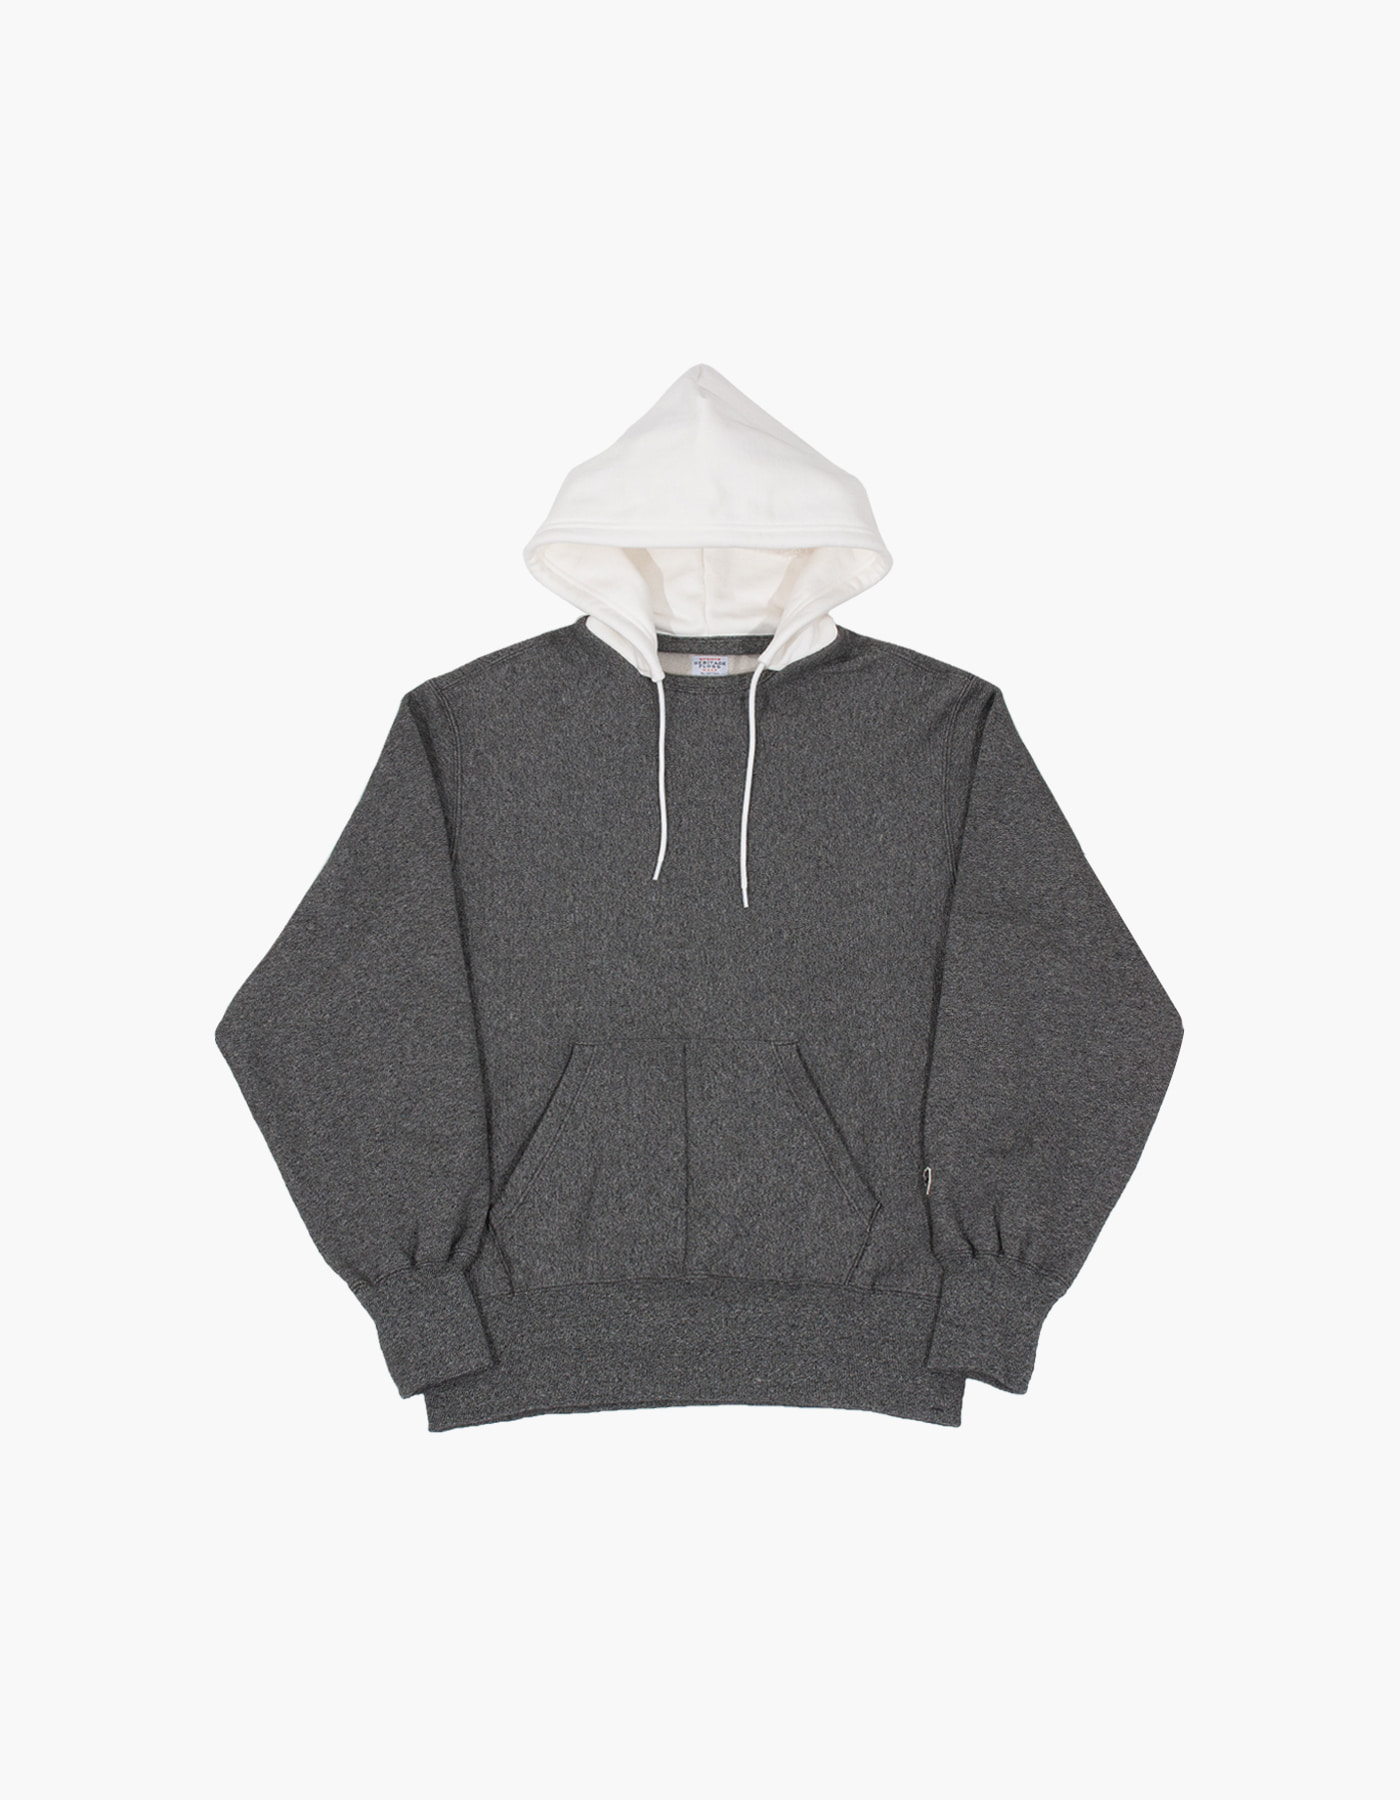 ACS BLOCKED HOODIE / SALT&PEPPER-WHITE